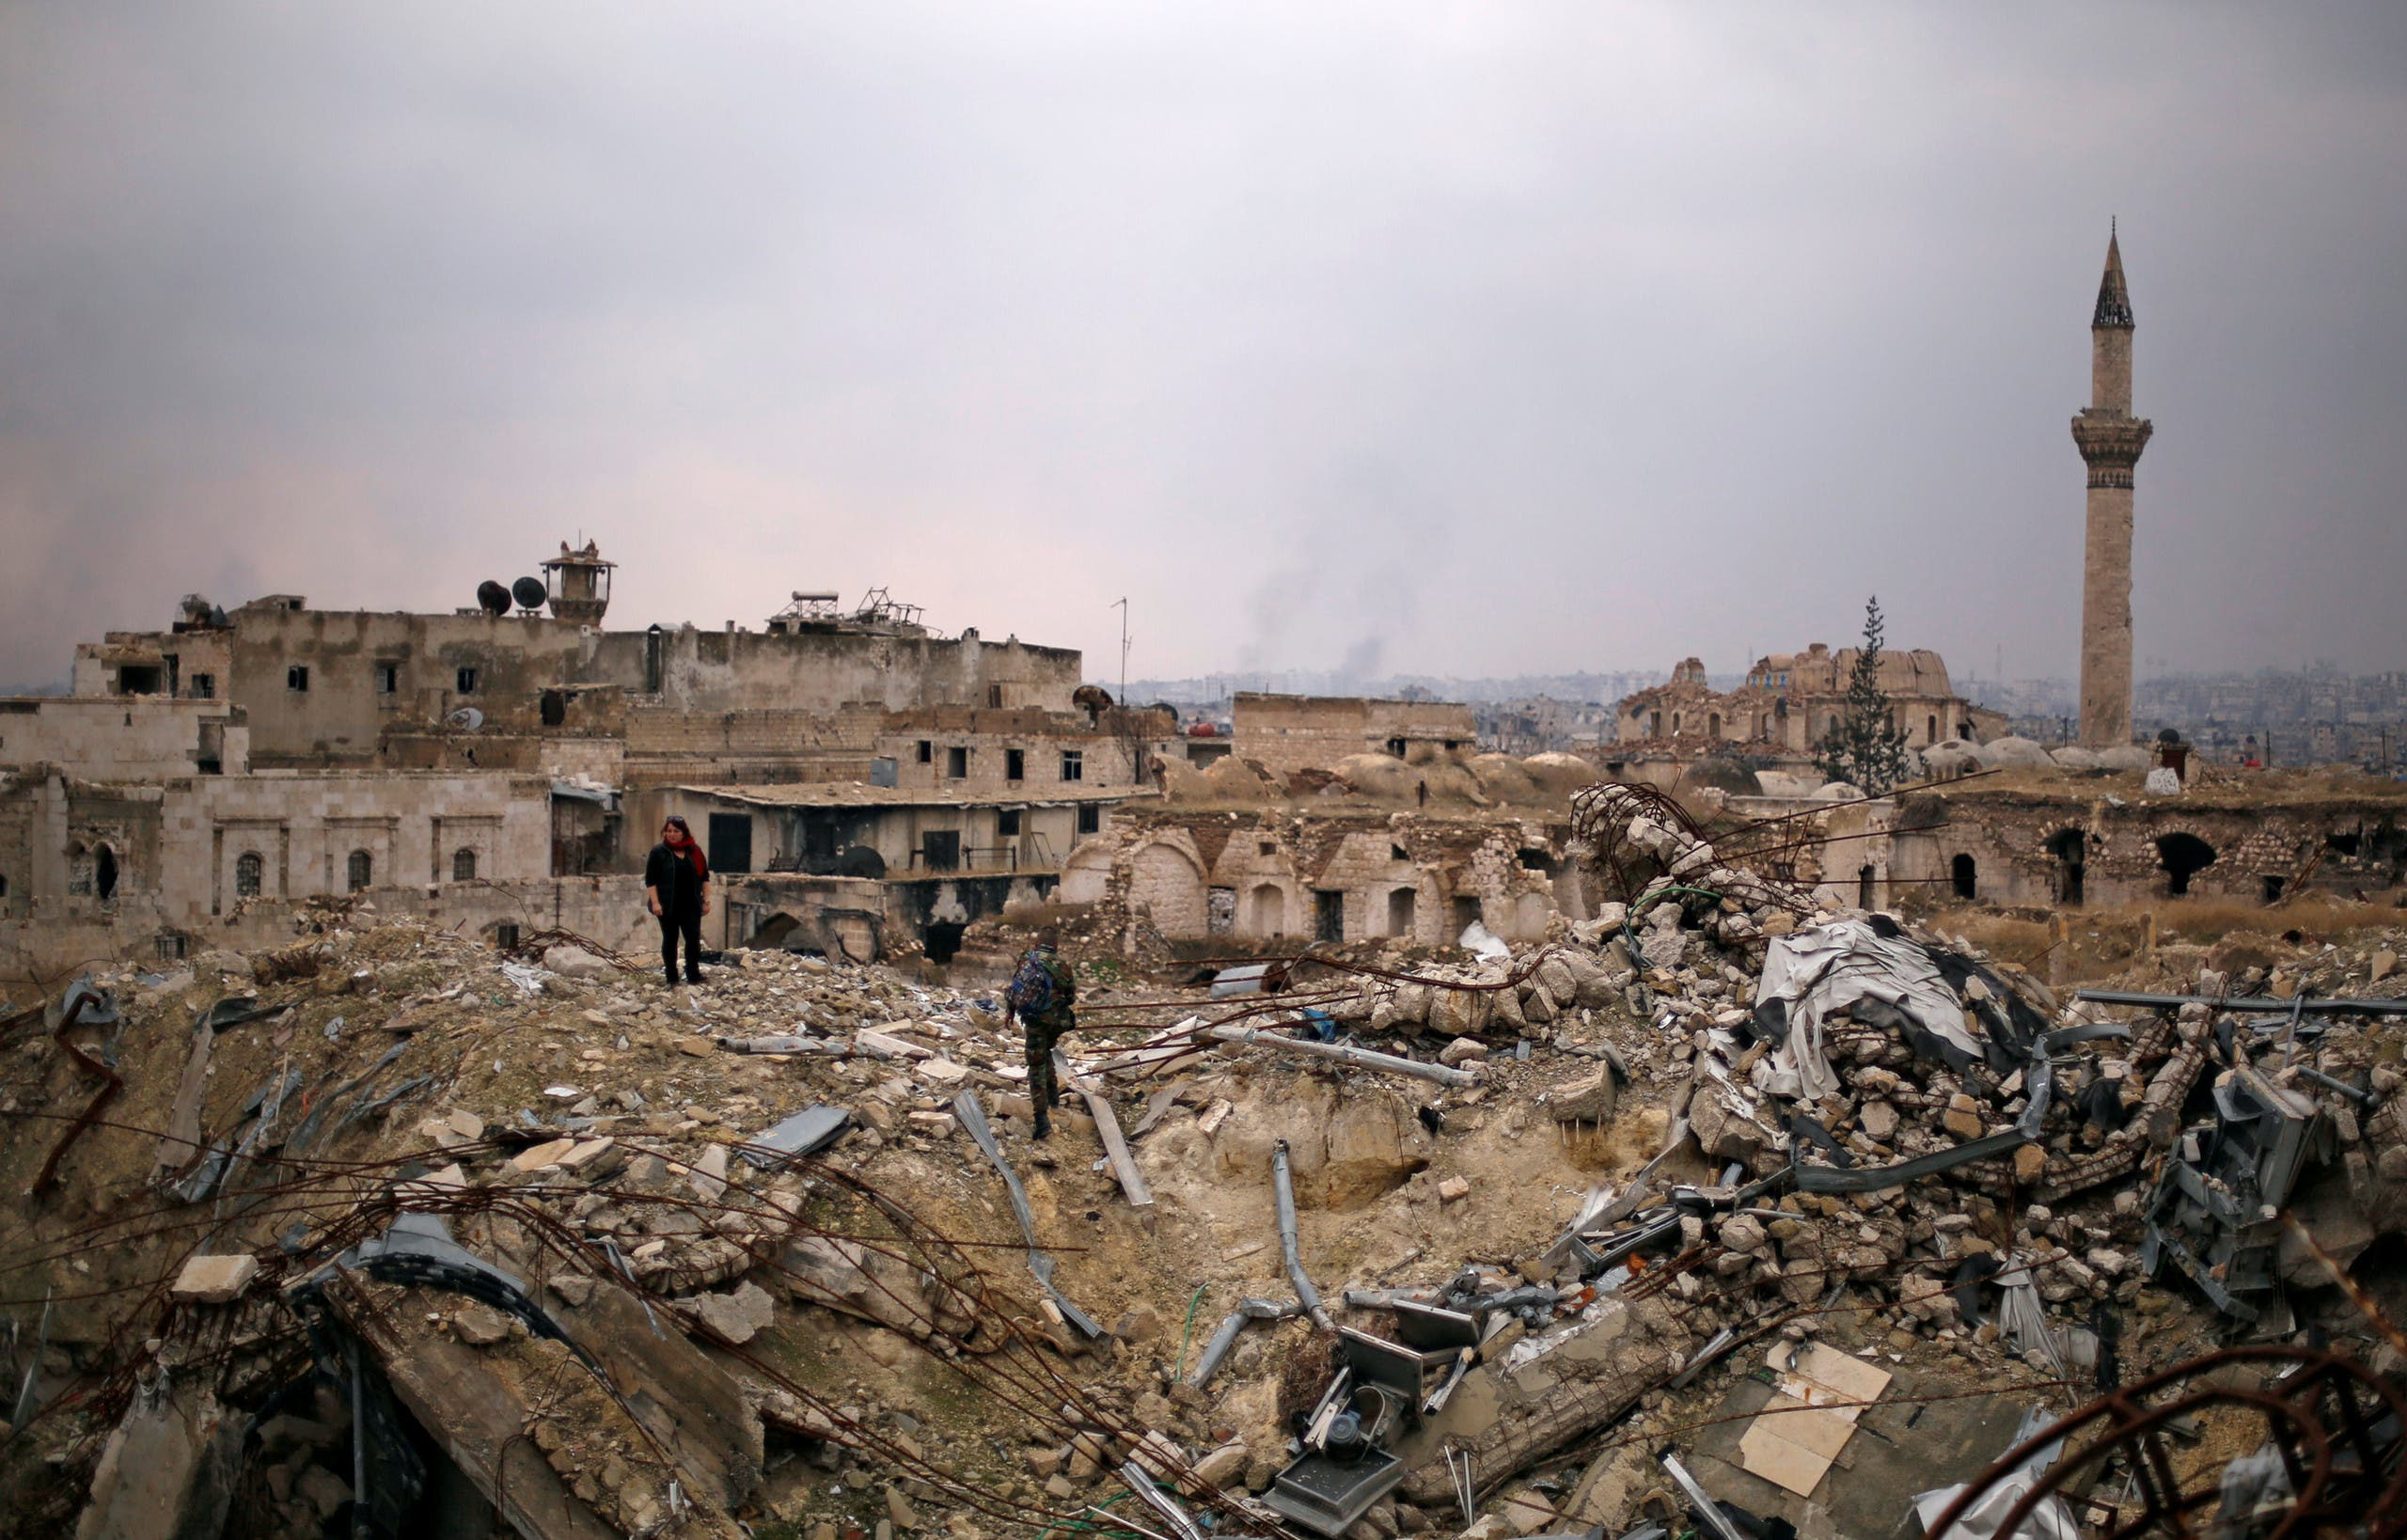 A member of forces loyal to Syria's President Bashar al-Assad stands with a civilian on the rubble of the Carlton Hotel, in the government controlled area of Aleppo, Syria December 17, 2016